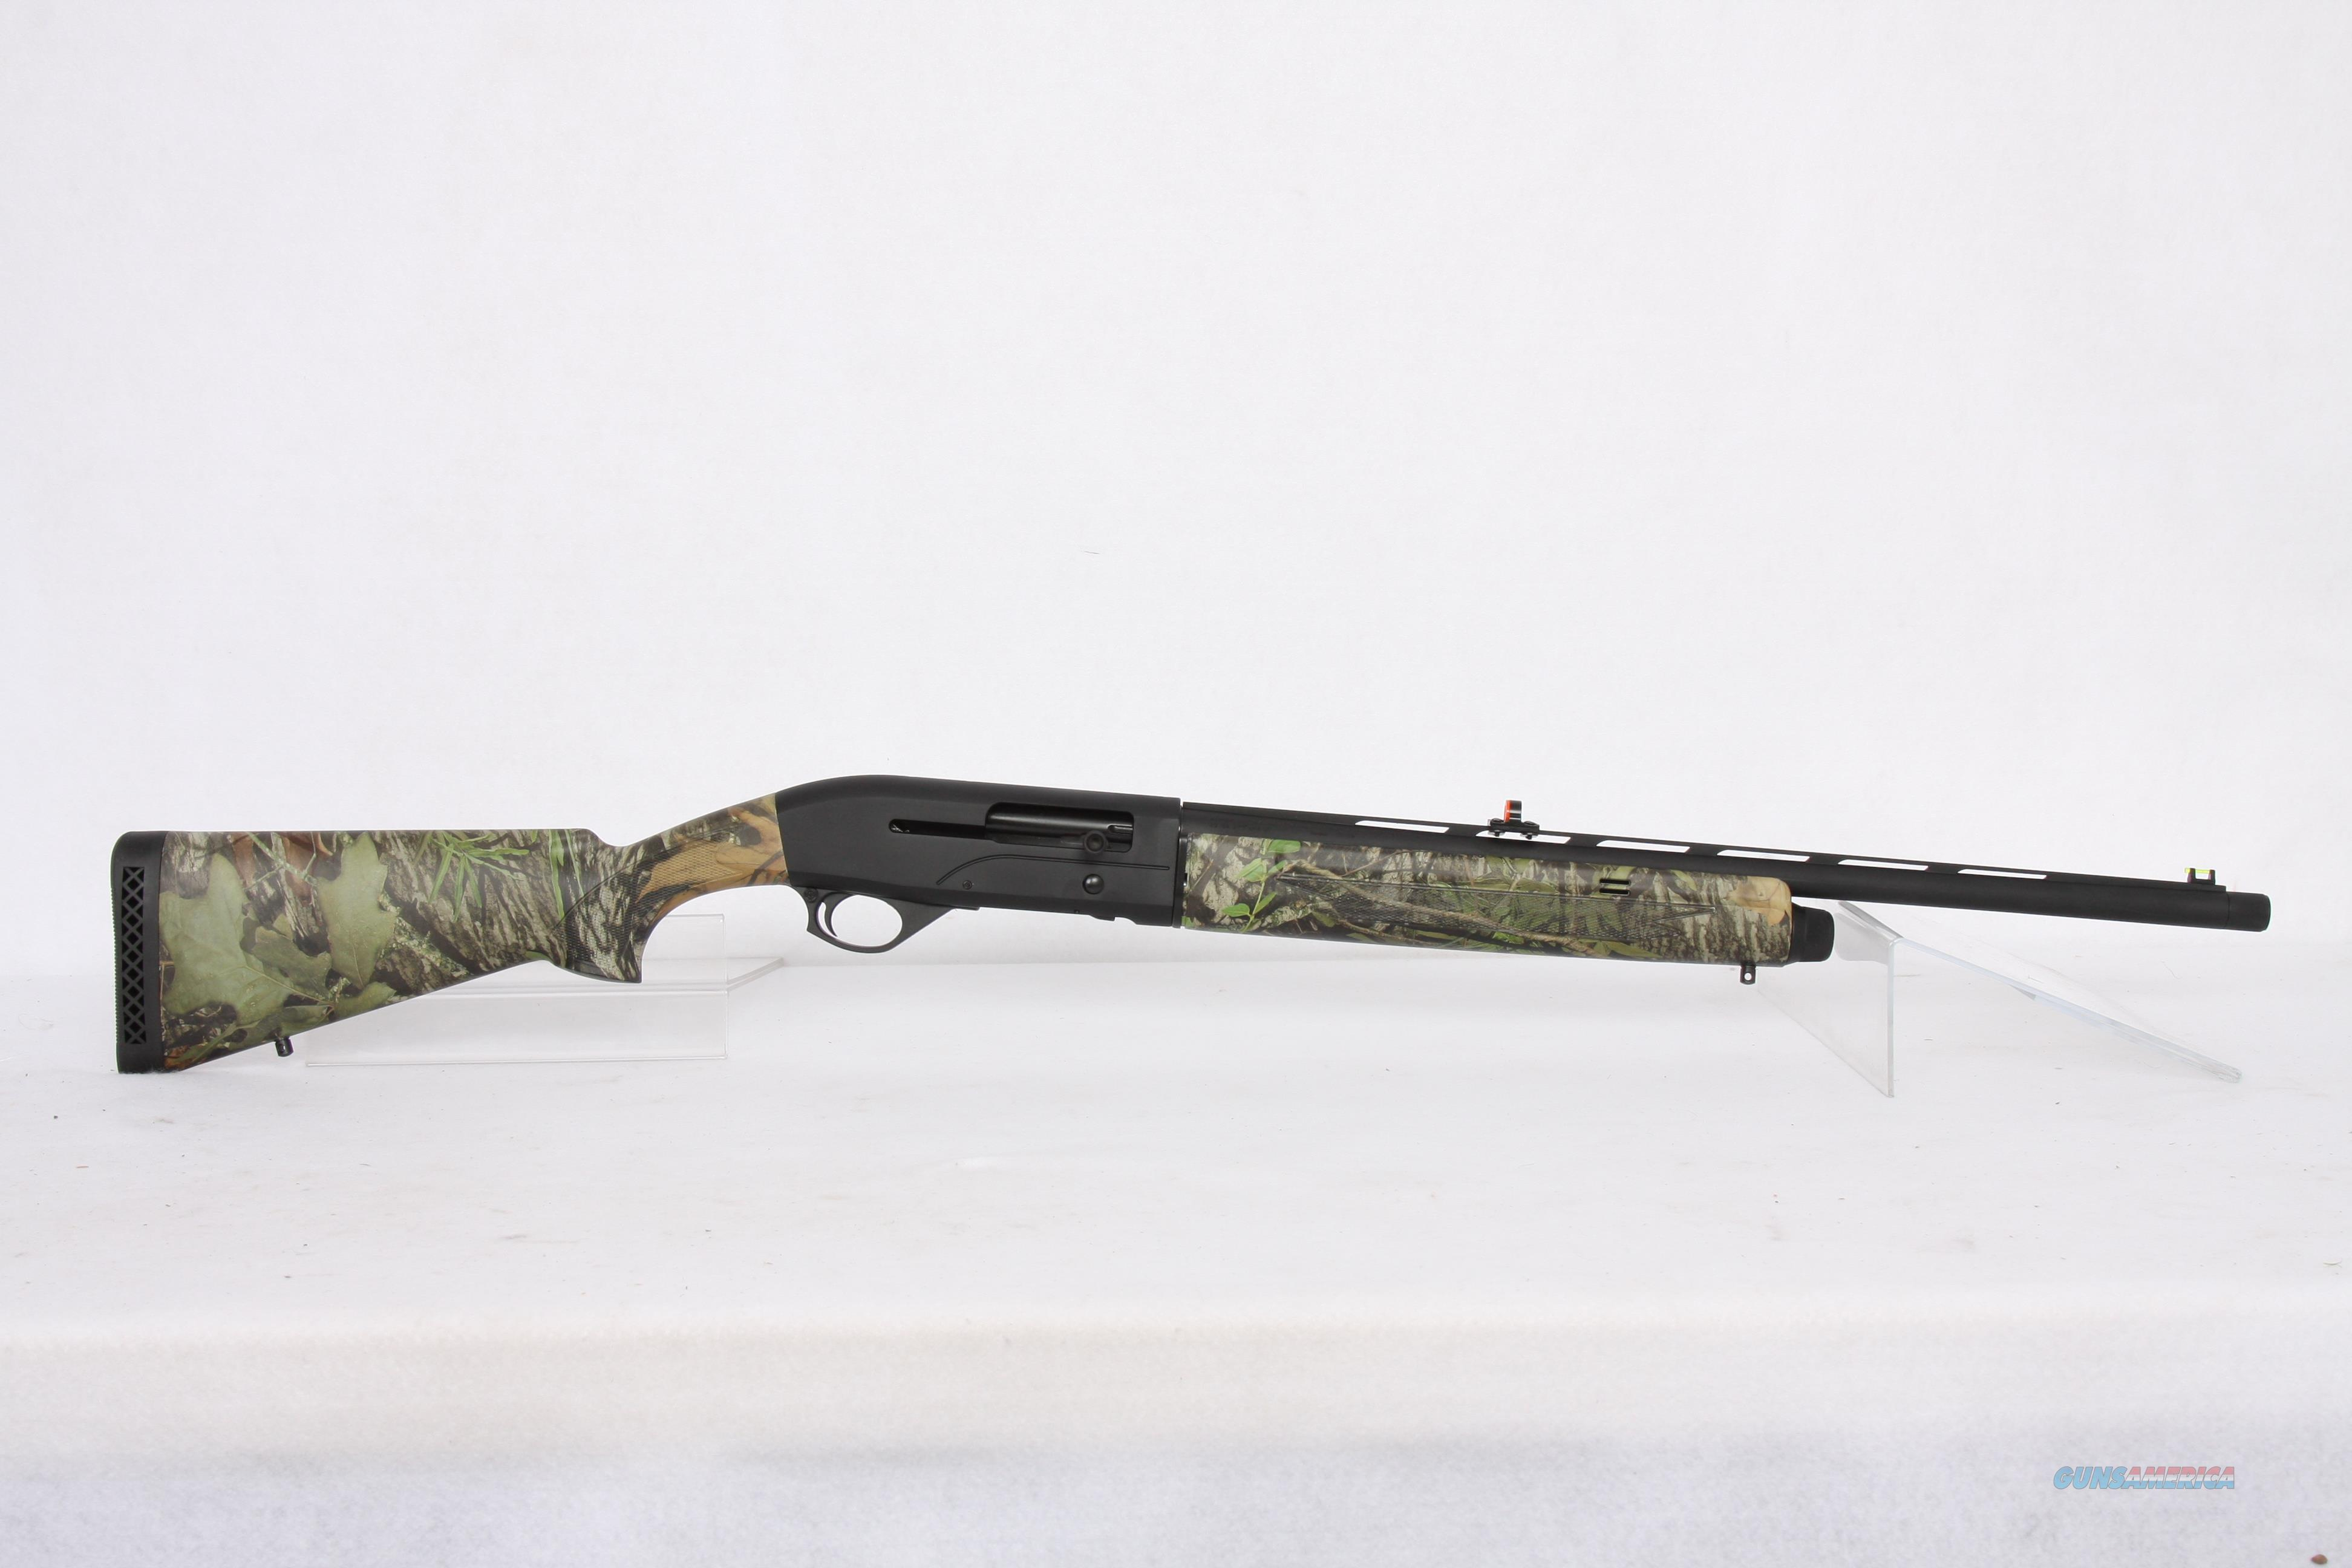 Mossberg SA-20 Turkey 20g 22in Mossy Oak Obsession  Guns > Shotguns > Mossberg Shotguns > Autoloaders